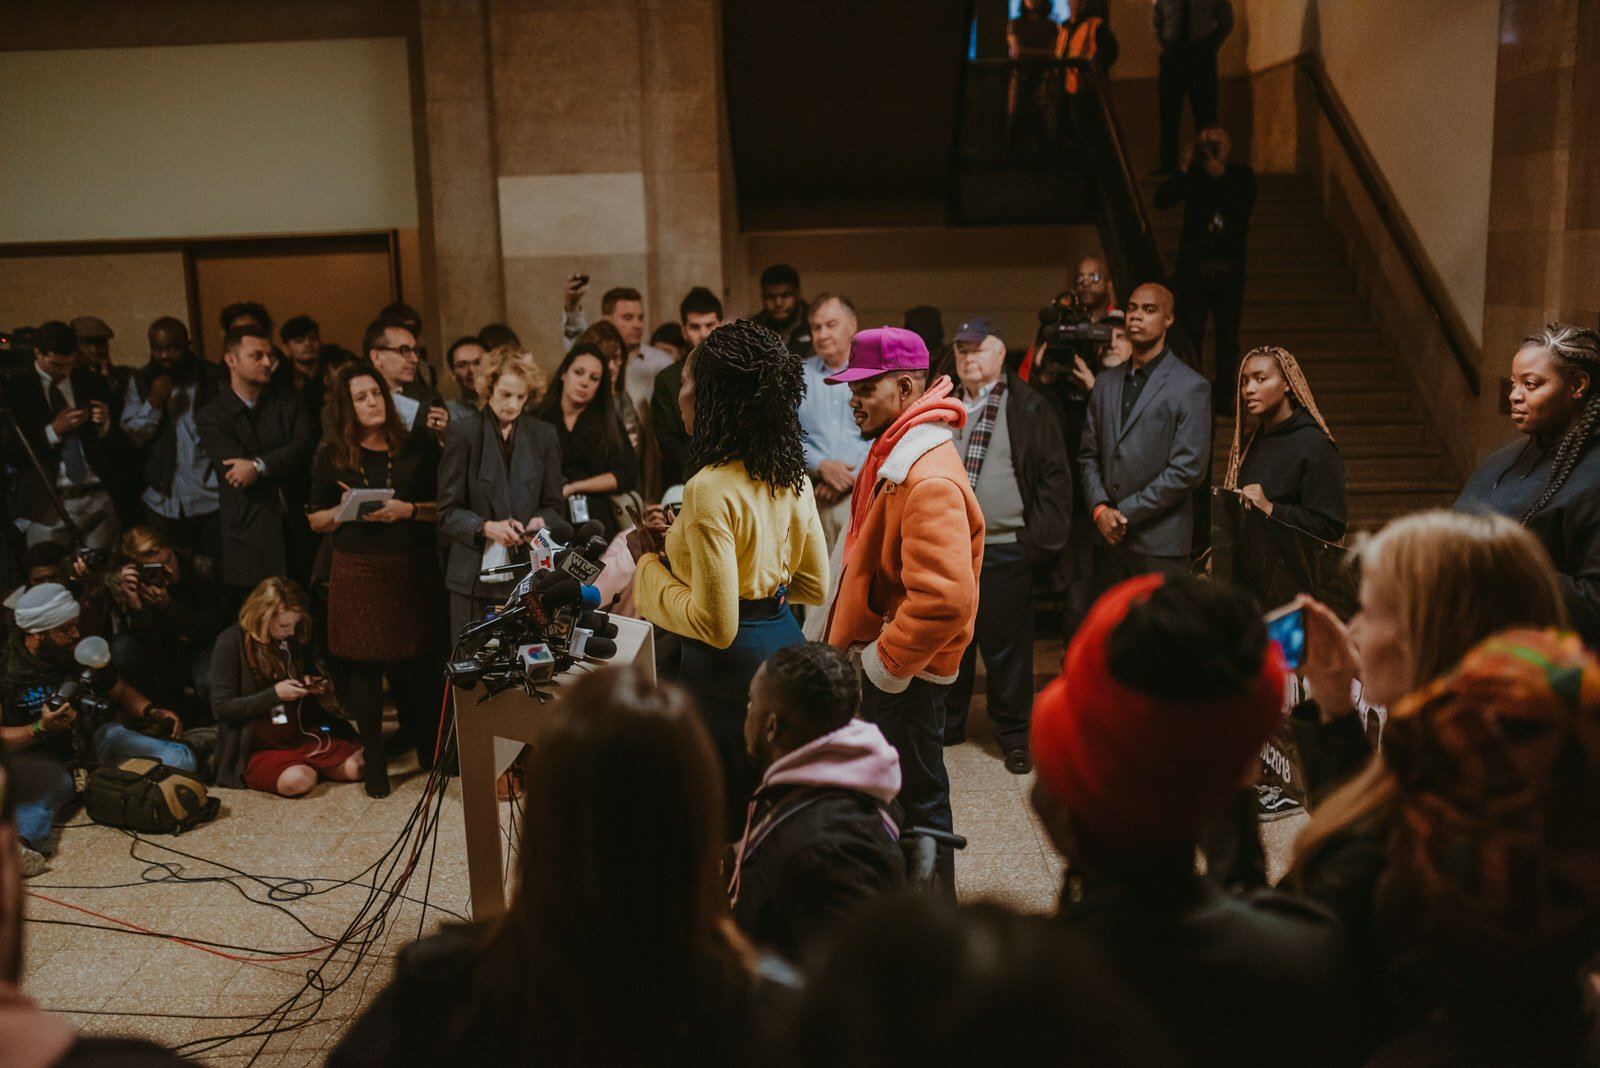 Chance The Rapper Endorses Amara Enyia For Mayor at Chicago City hall